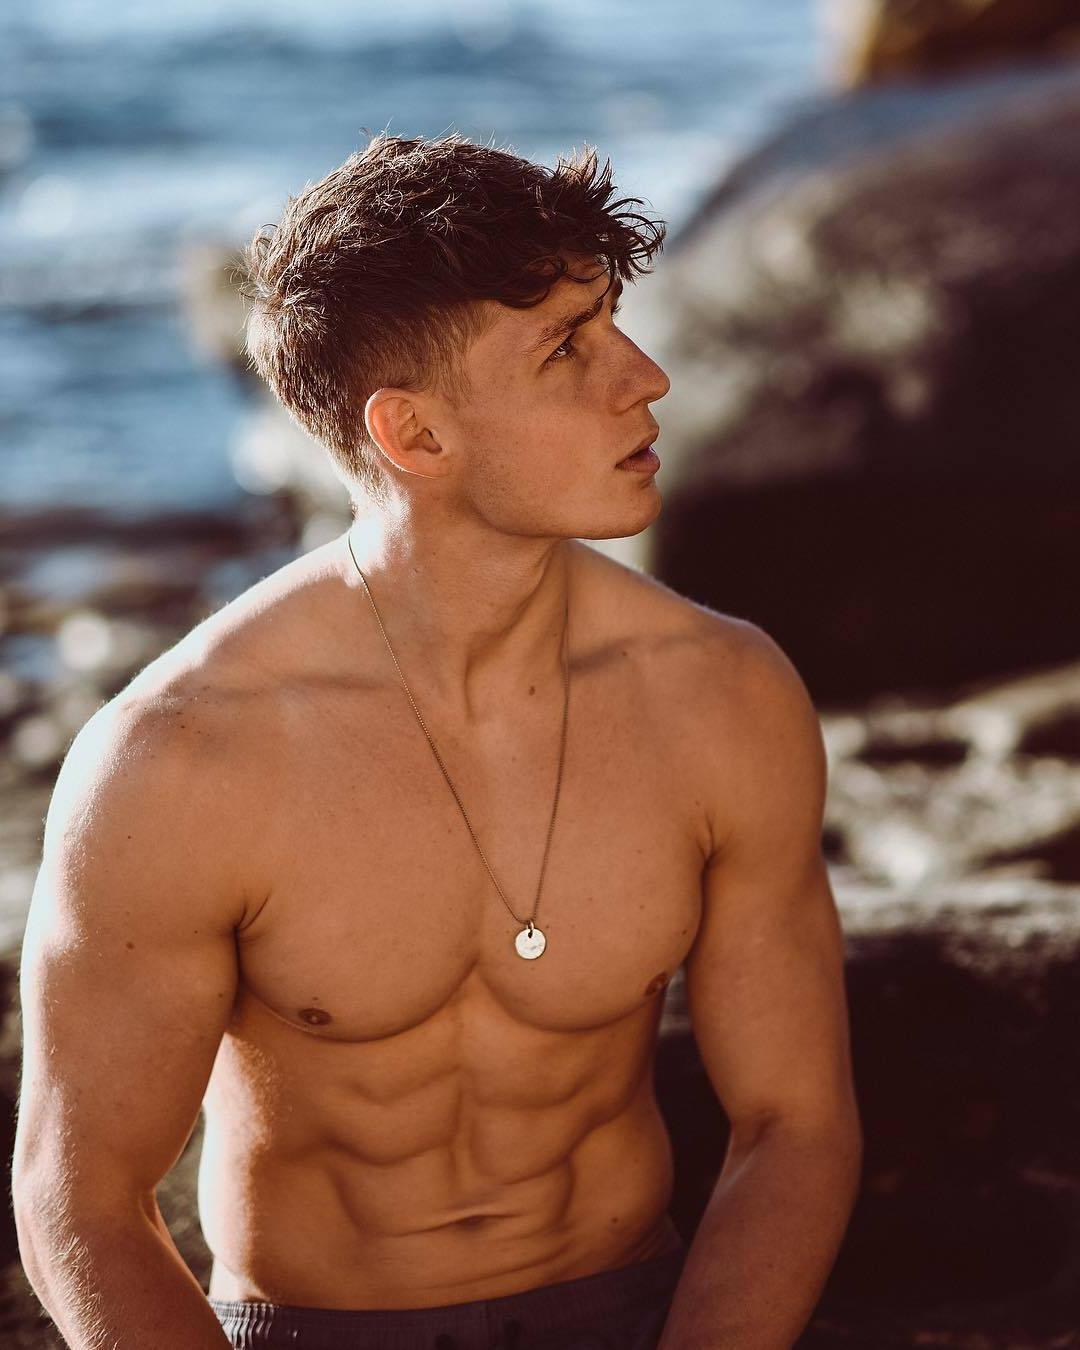 shirtless-fit-male-model-abs-pecs